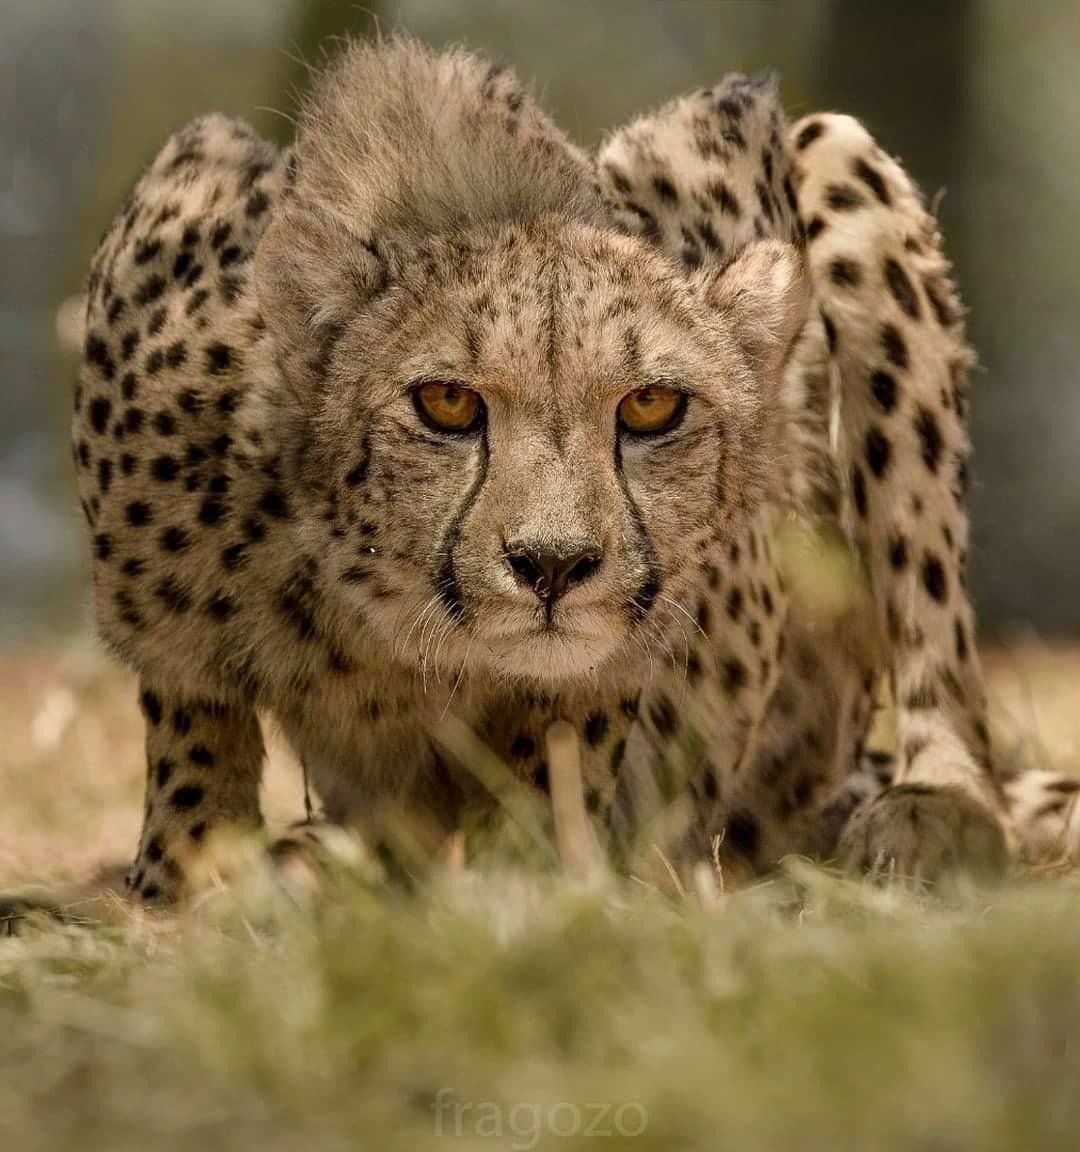 Pin by Johnnie m Jamaica on Big Cats. . in 2020 Animal